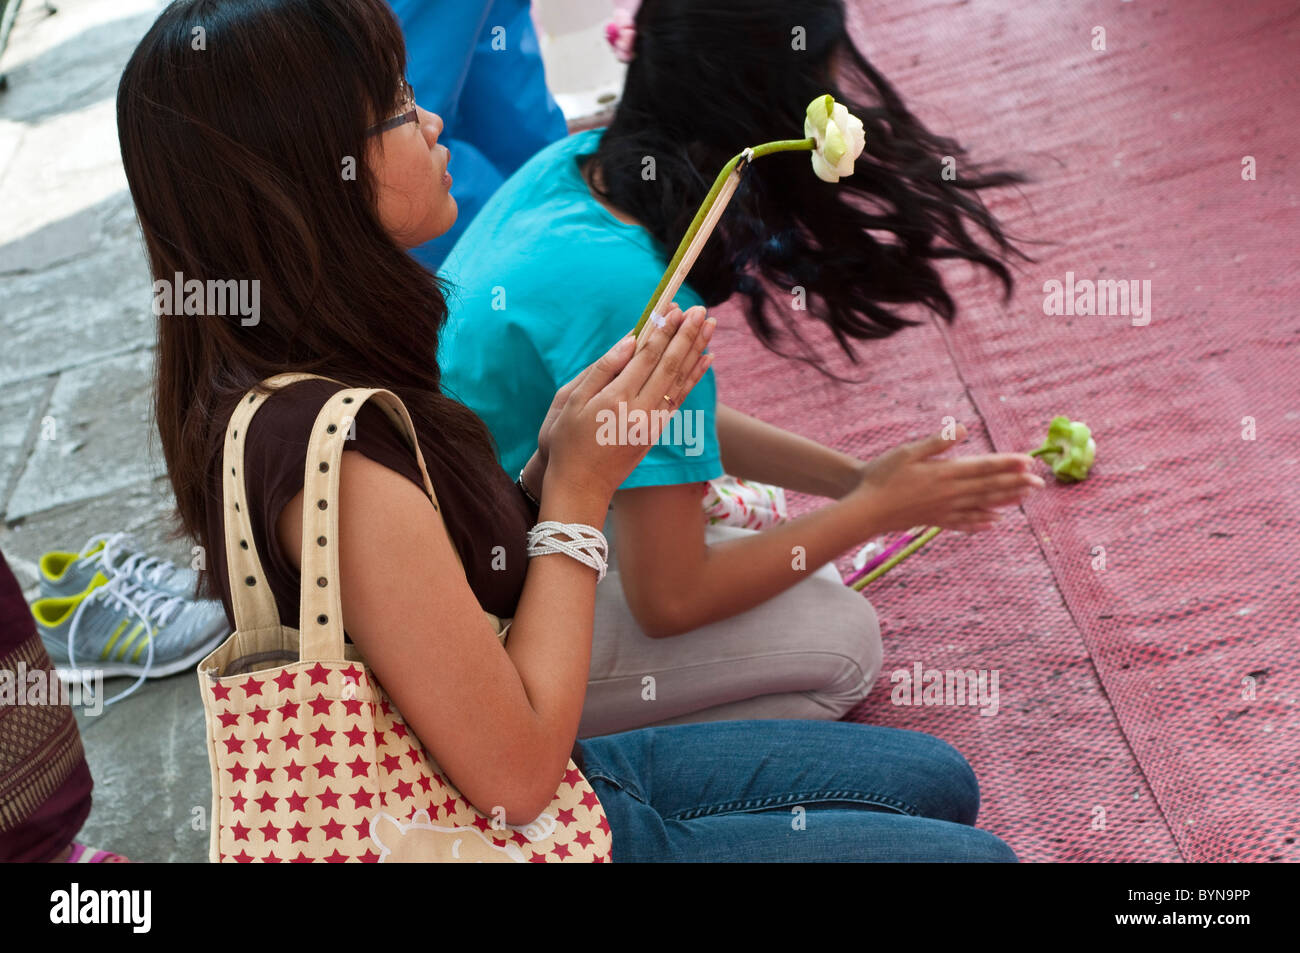 Worshipers praying at a shrine, Wat Phra Kaeo, Grand Palace, Bangkok, Thailand - Stock Image